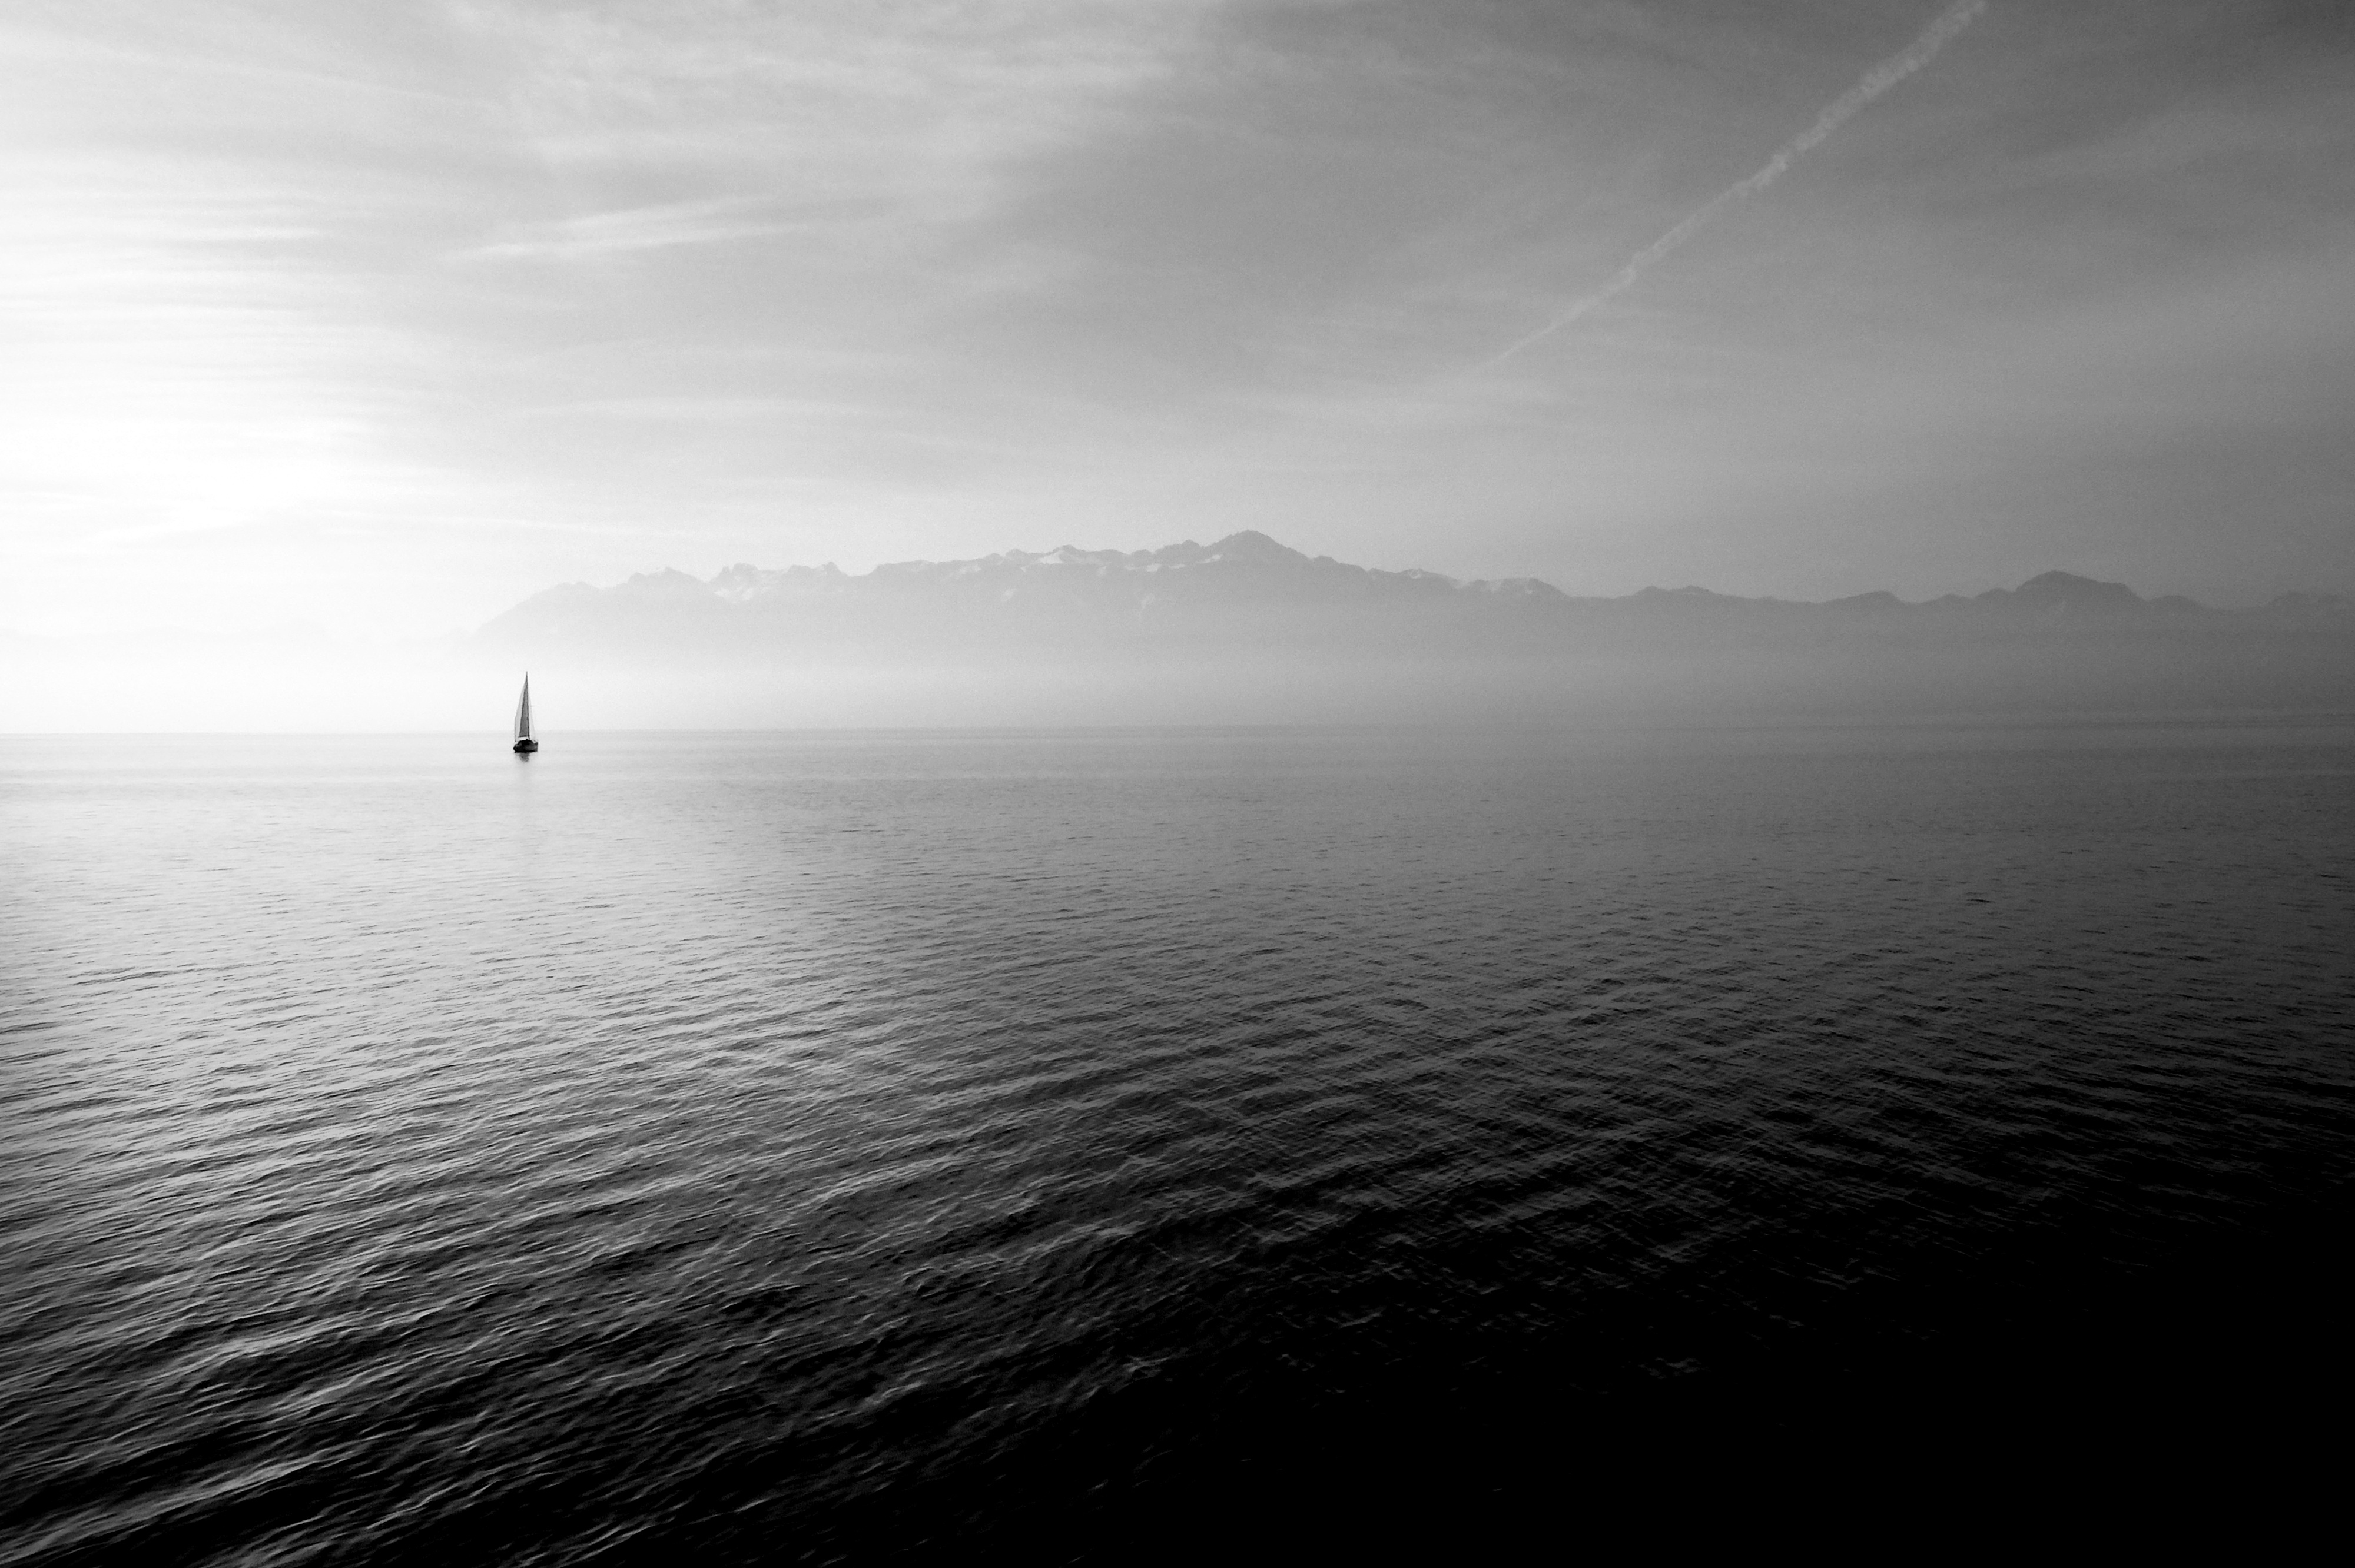 Lonely sailboat, black and white, sailboat, bay, water